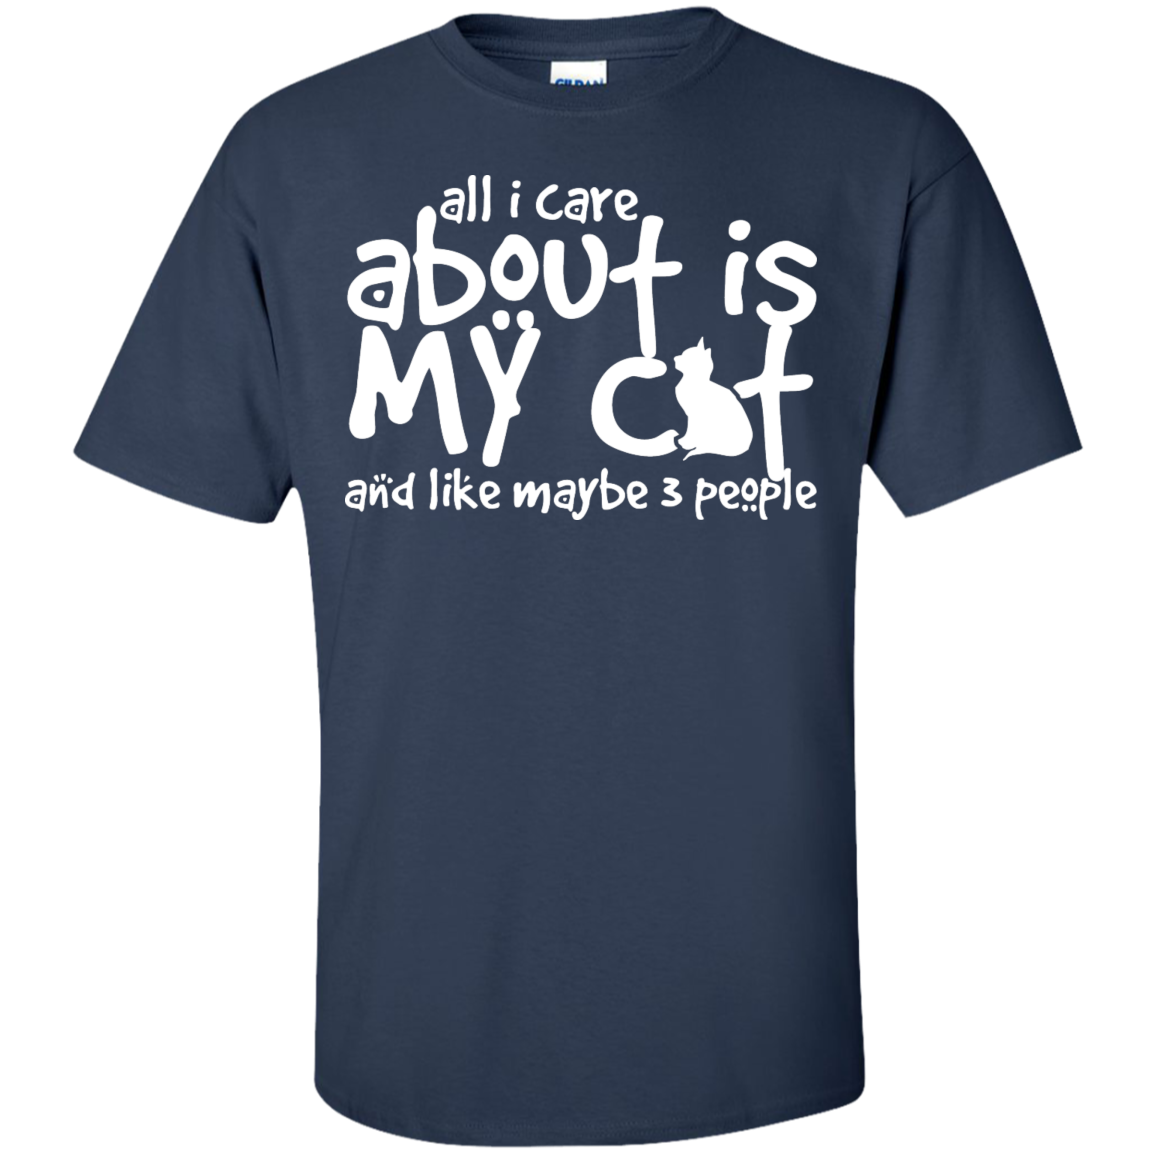 All I Care About Is My Cat - T Shirt